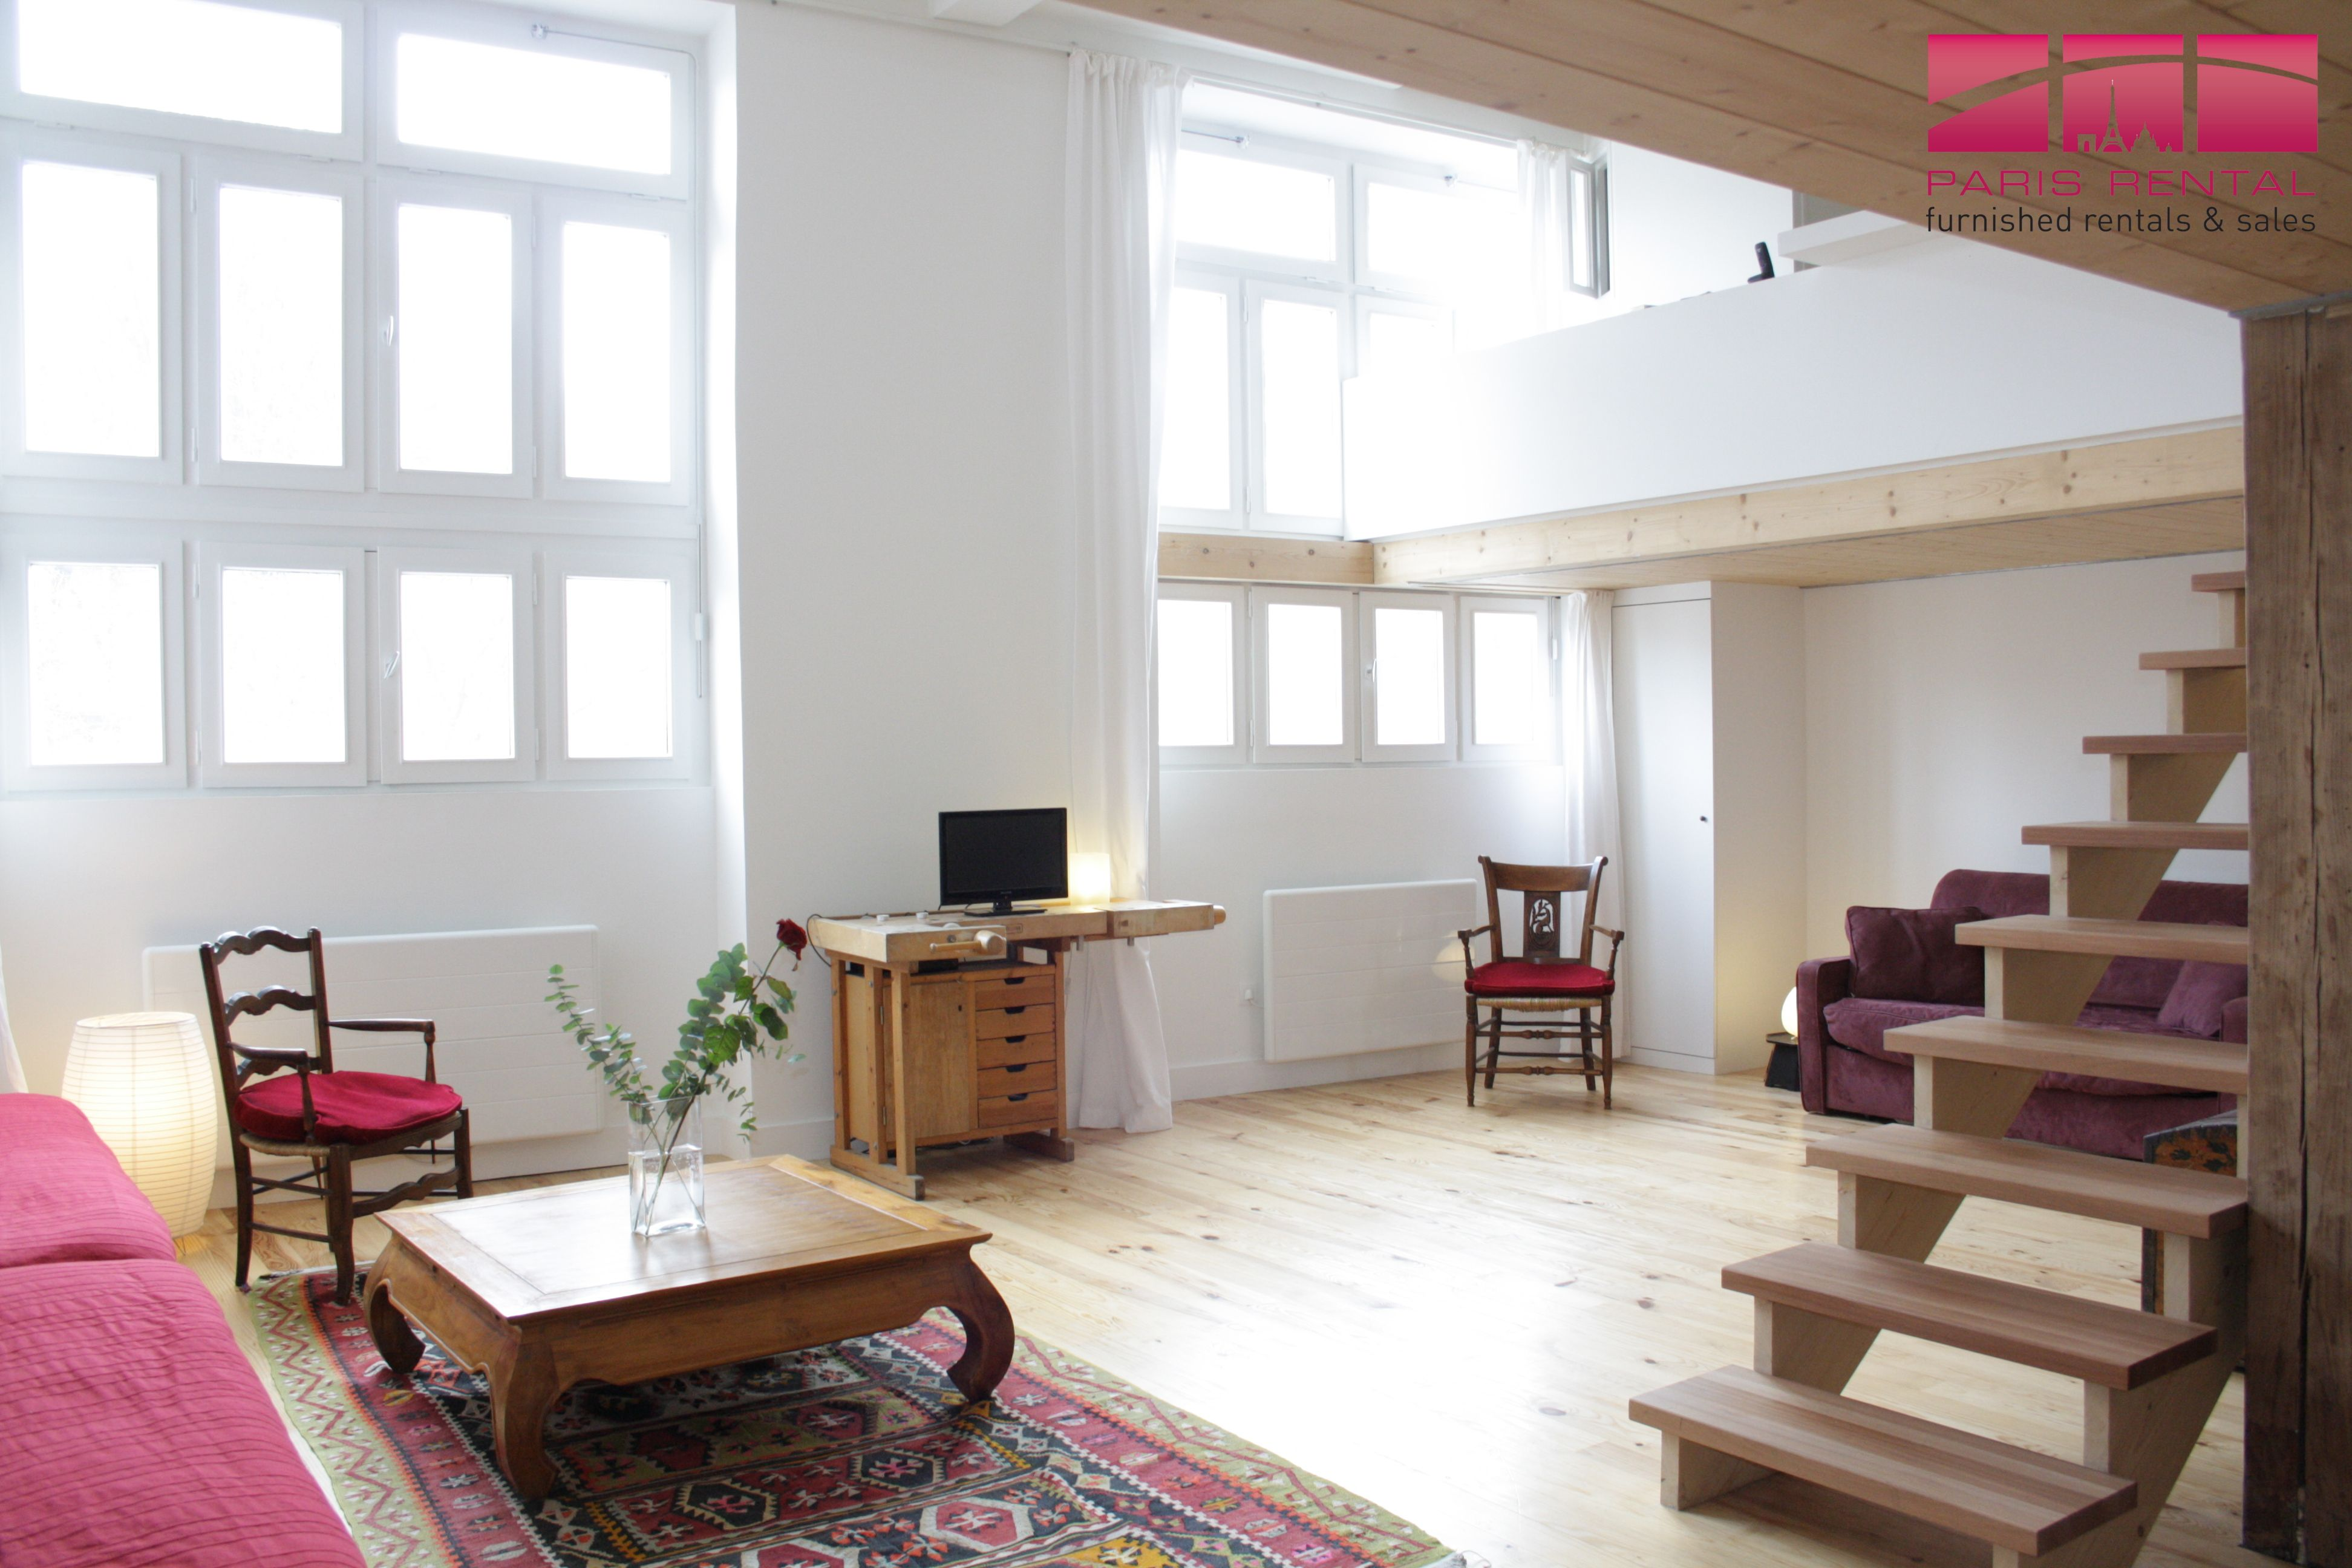 This 1bedroom furnished loft in the 11th arrondissement